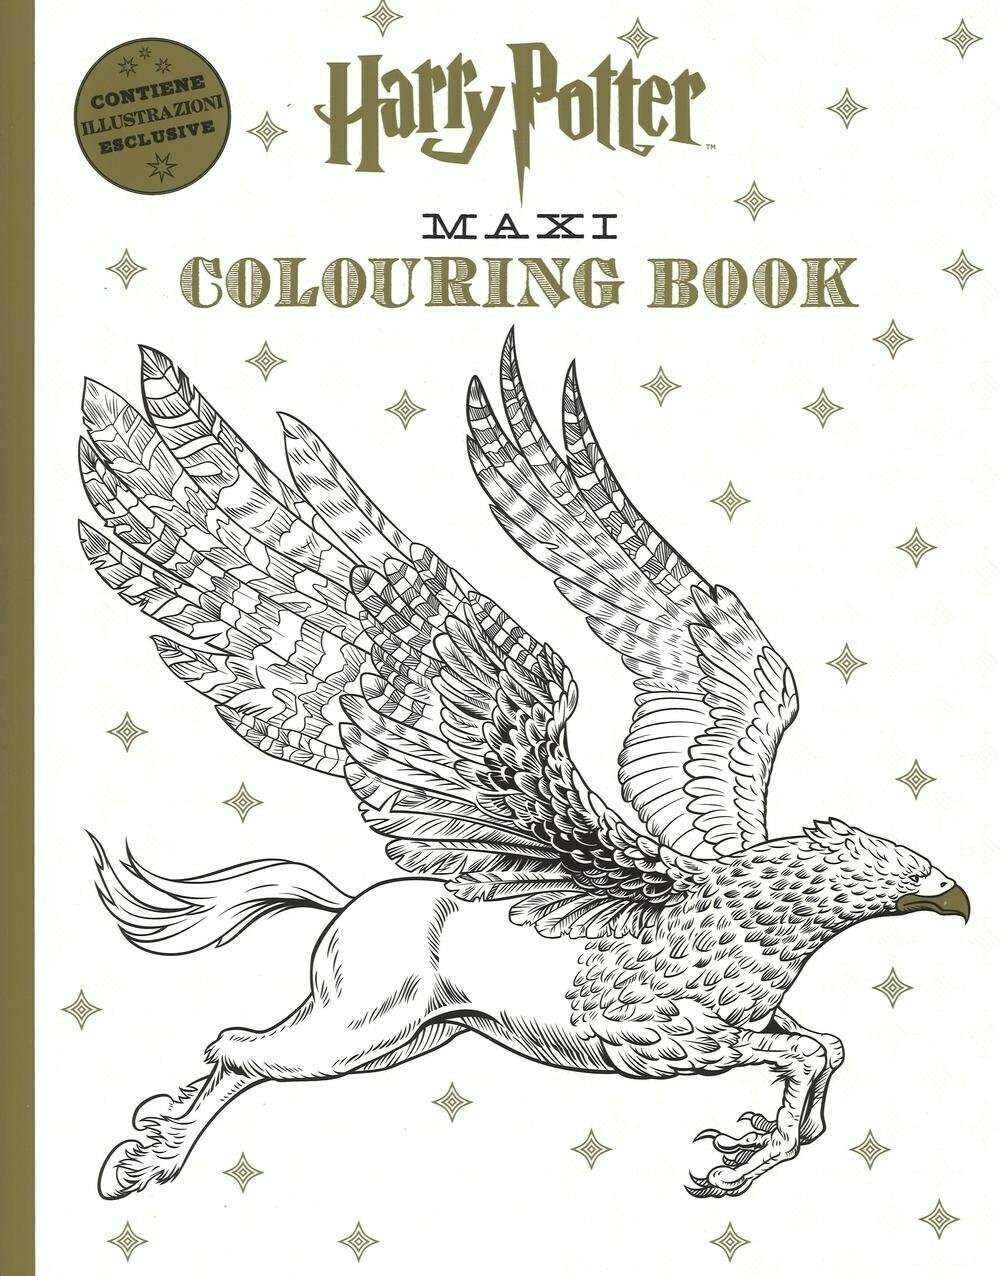 Harry Potter maxi colouring book